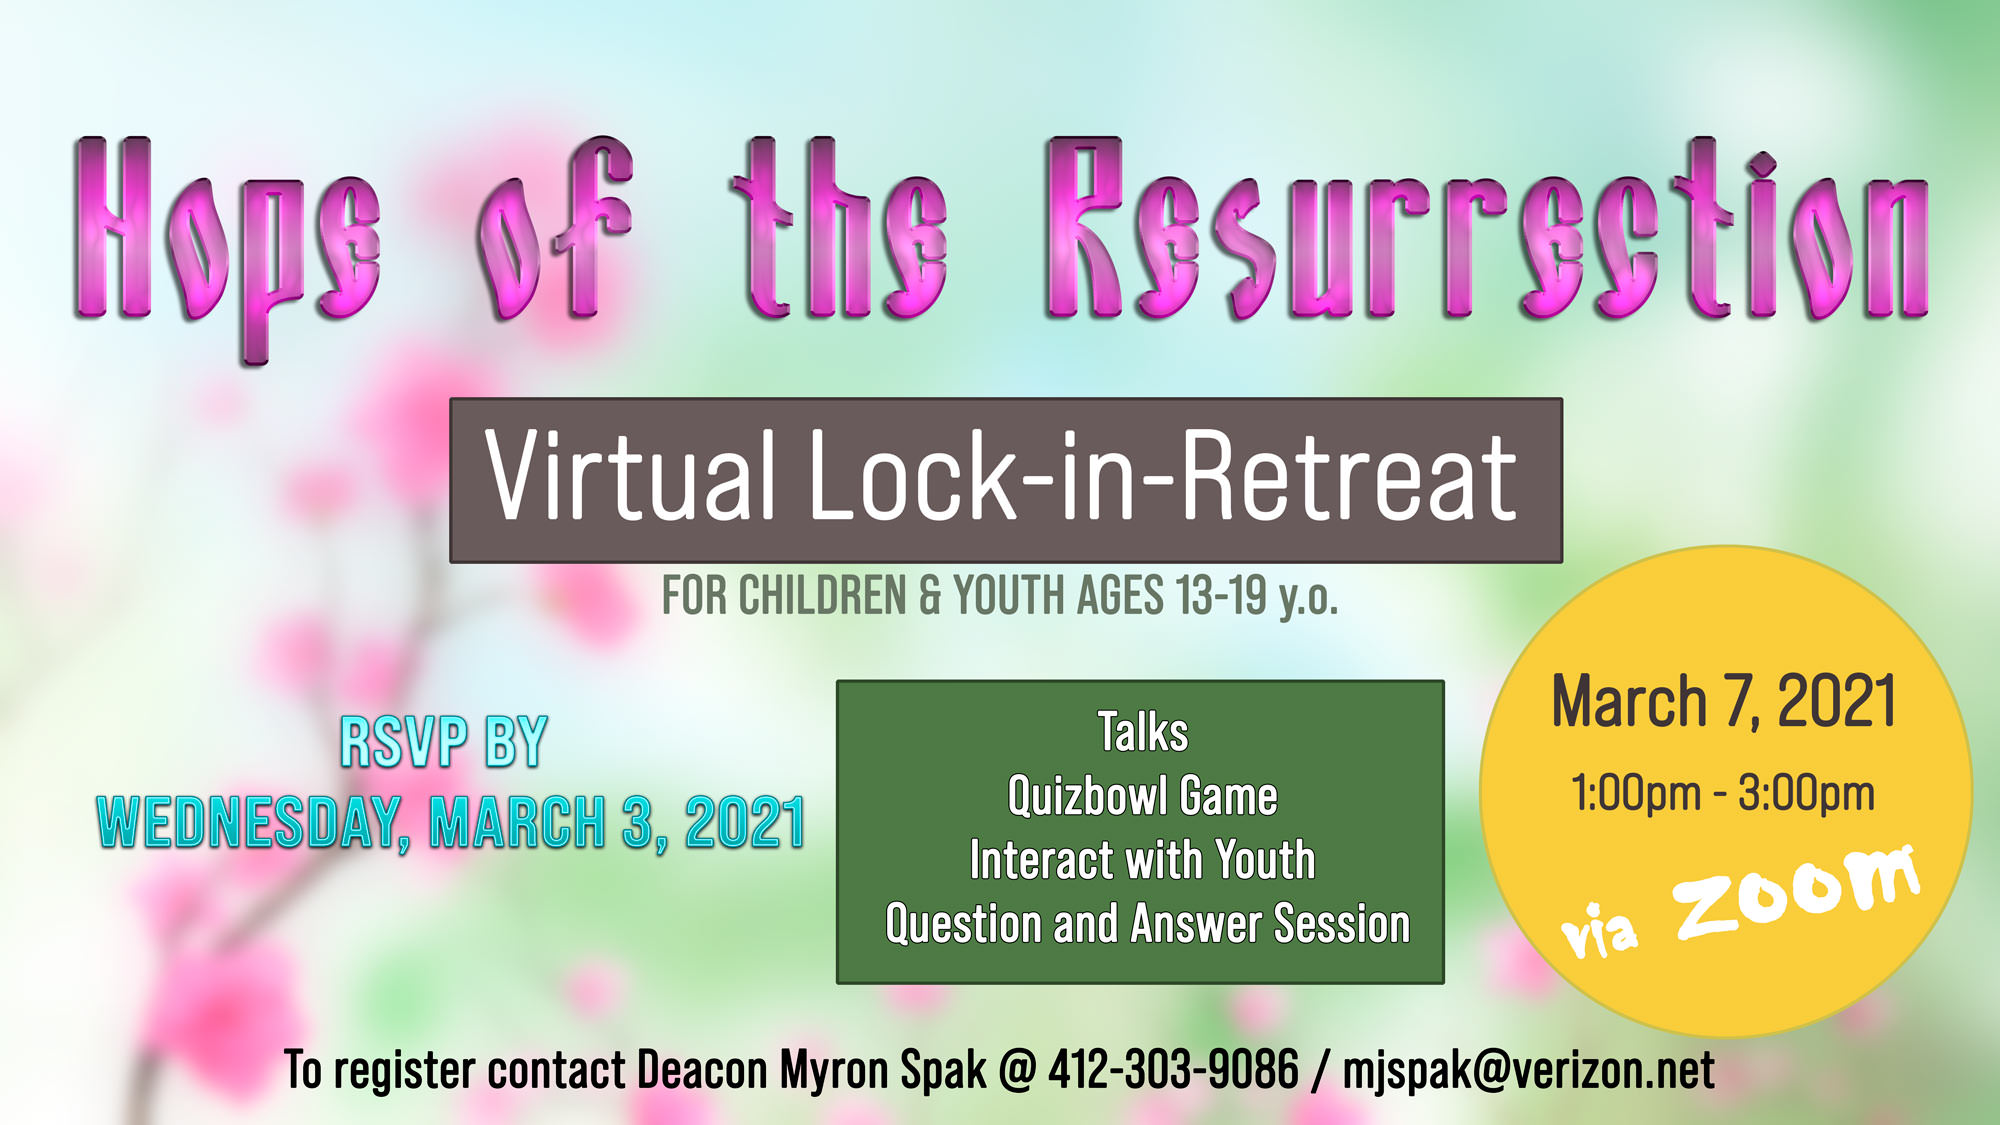 Youth Lock-In Retreat via Zoom on Sunday, March 7, 2021